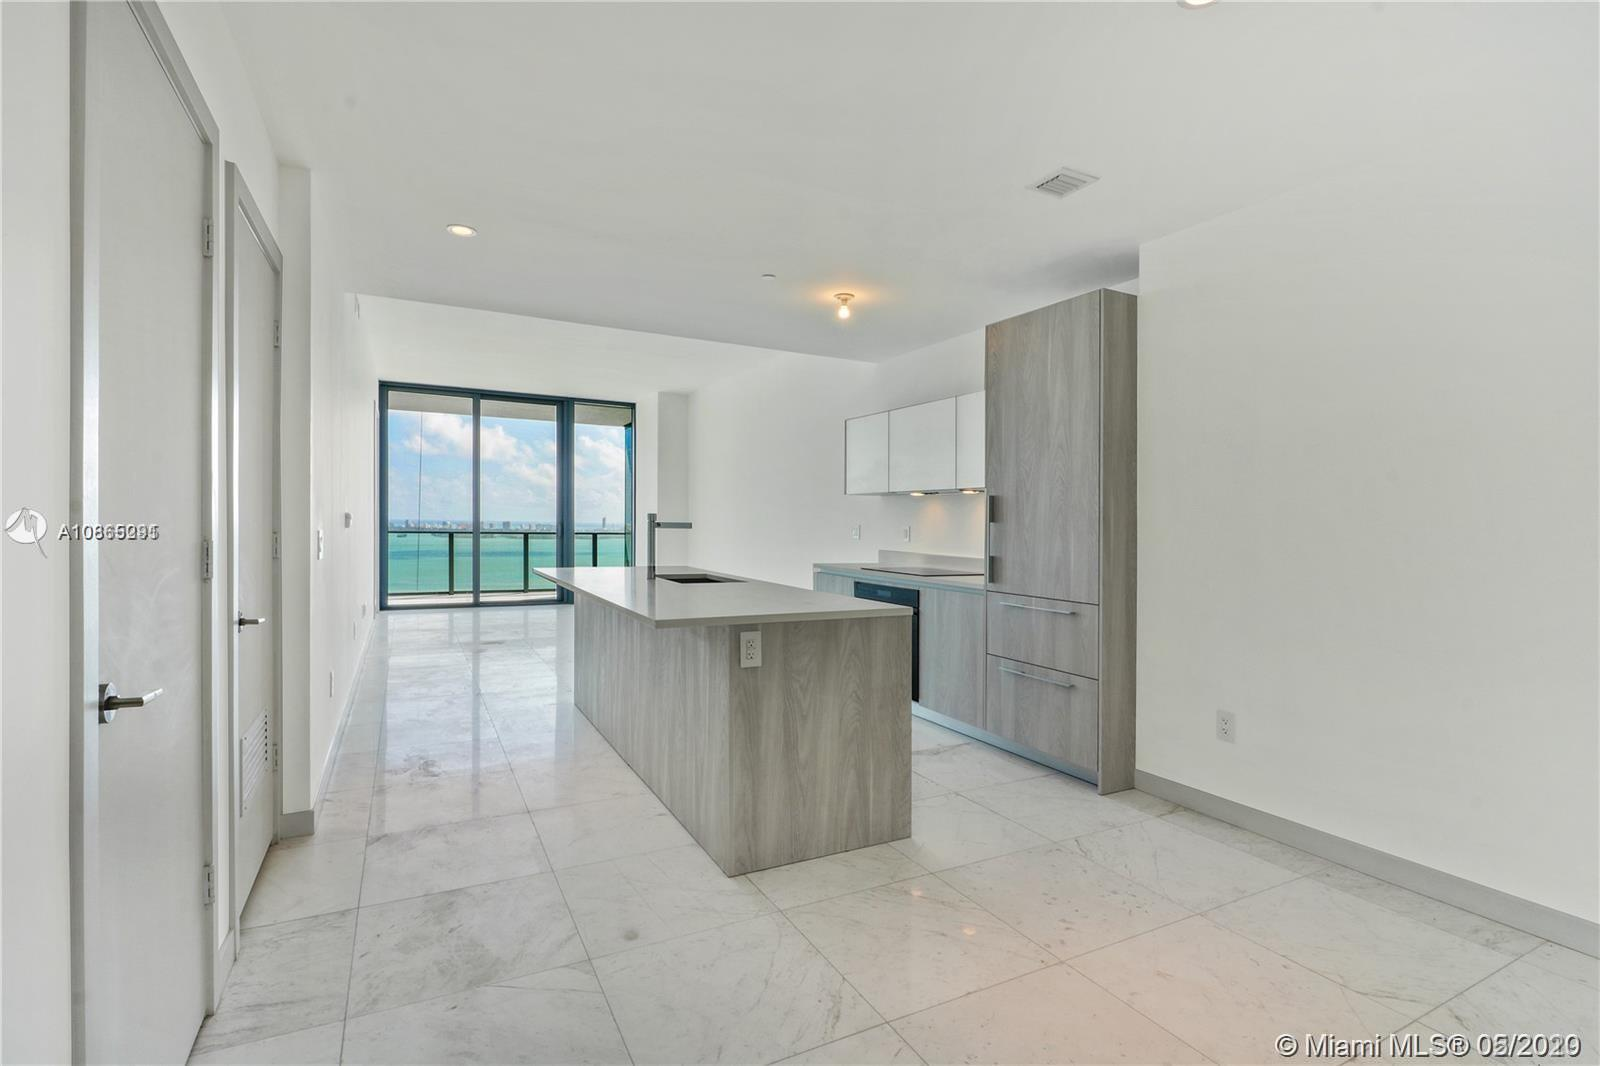 Photo of 480 NE 31 St #3203 listing for Sale